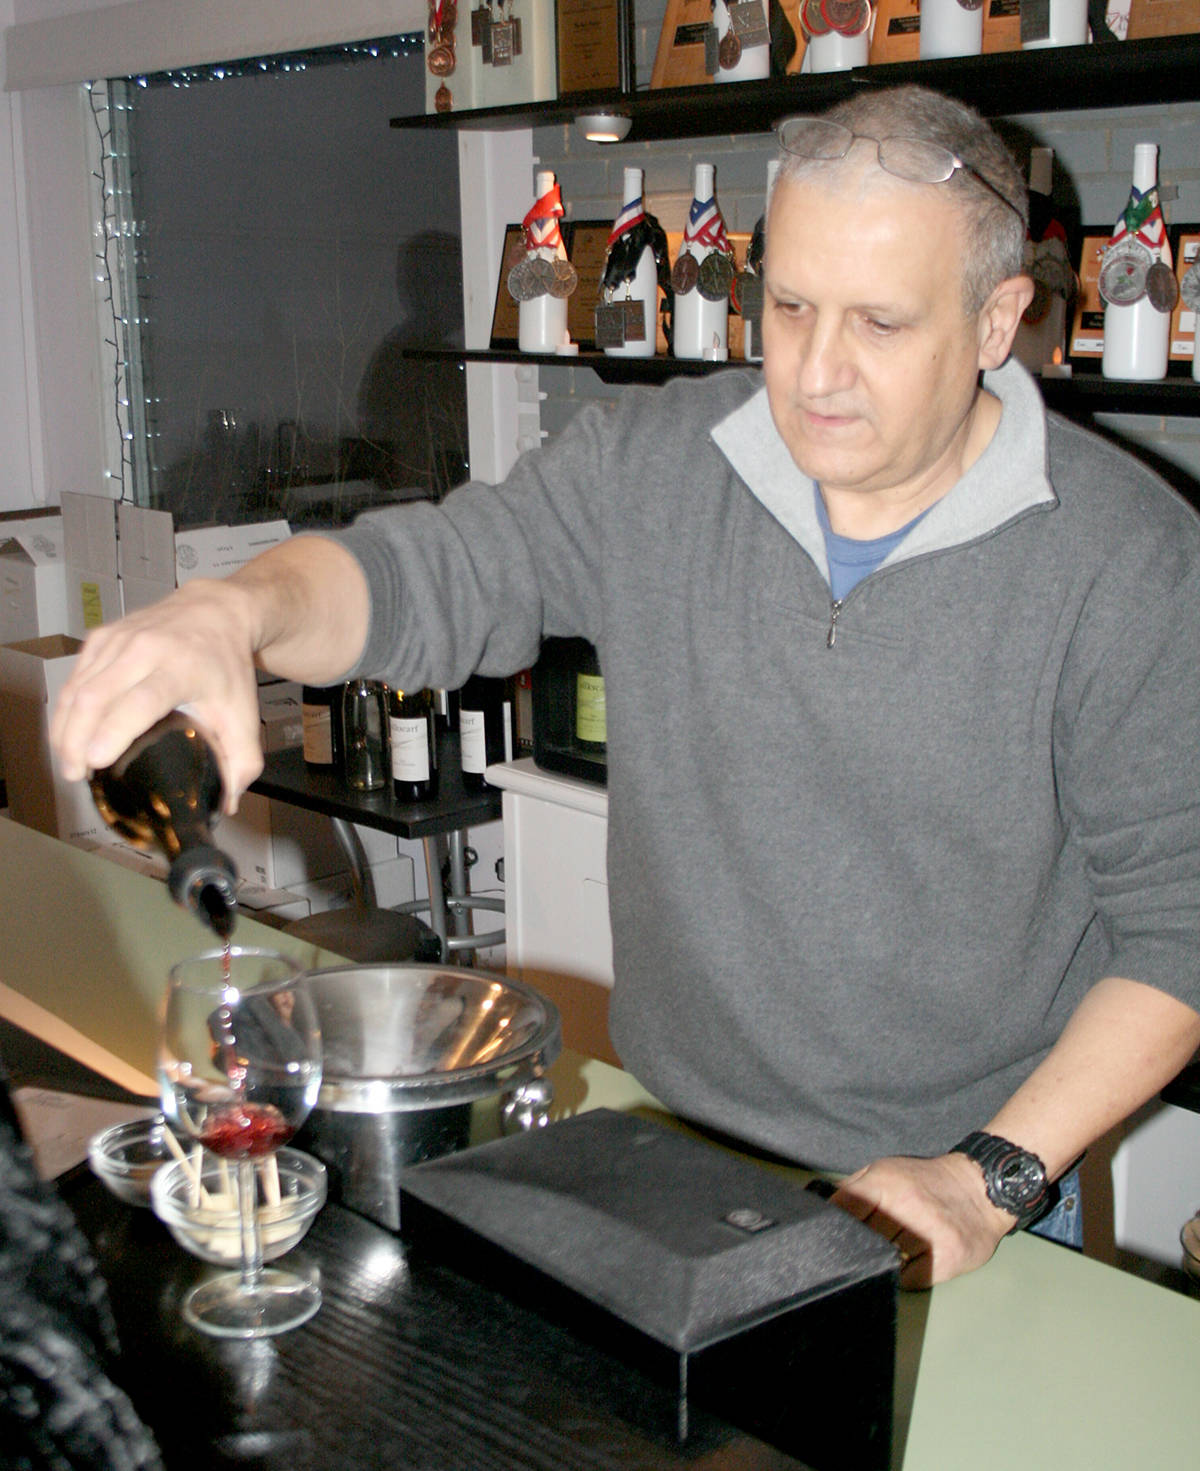 Roie Manoff of Silkscarf Winery pours a wine sample during a tasting. The winery's 2016 Cabernet Sauvignon has won gold at a recent competition in France. (Summerland Review file photo)